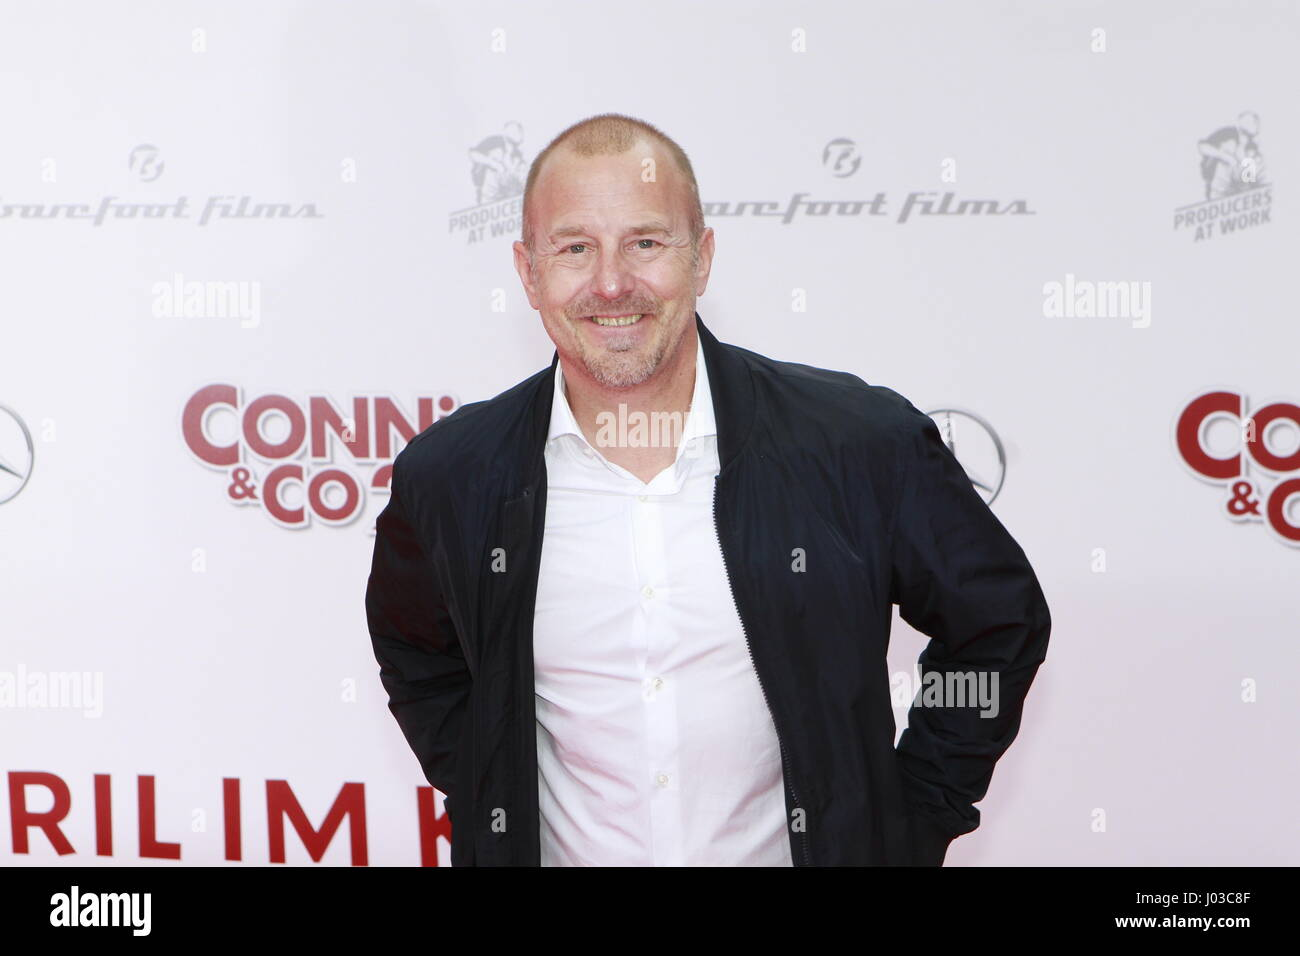 Berlin, Germany. 09th Apr, 2017. Actor Heino Ferch on the red carpet to the world premiere of the Kinofilms Conni - Stock Image